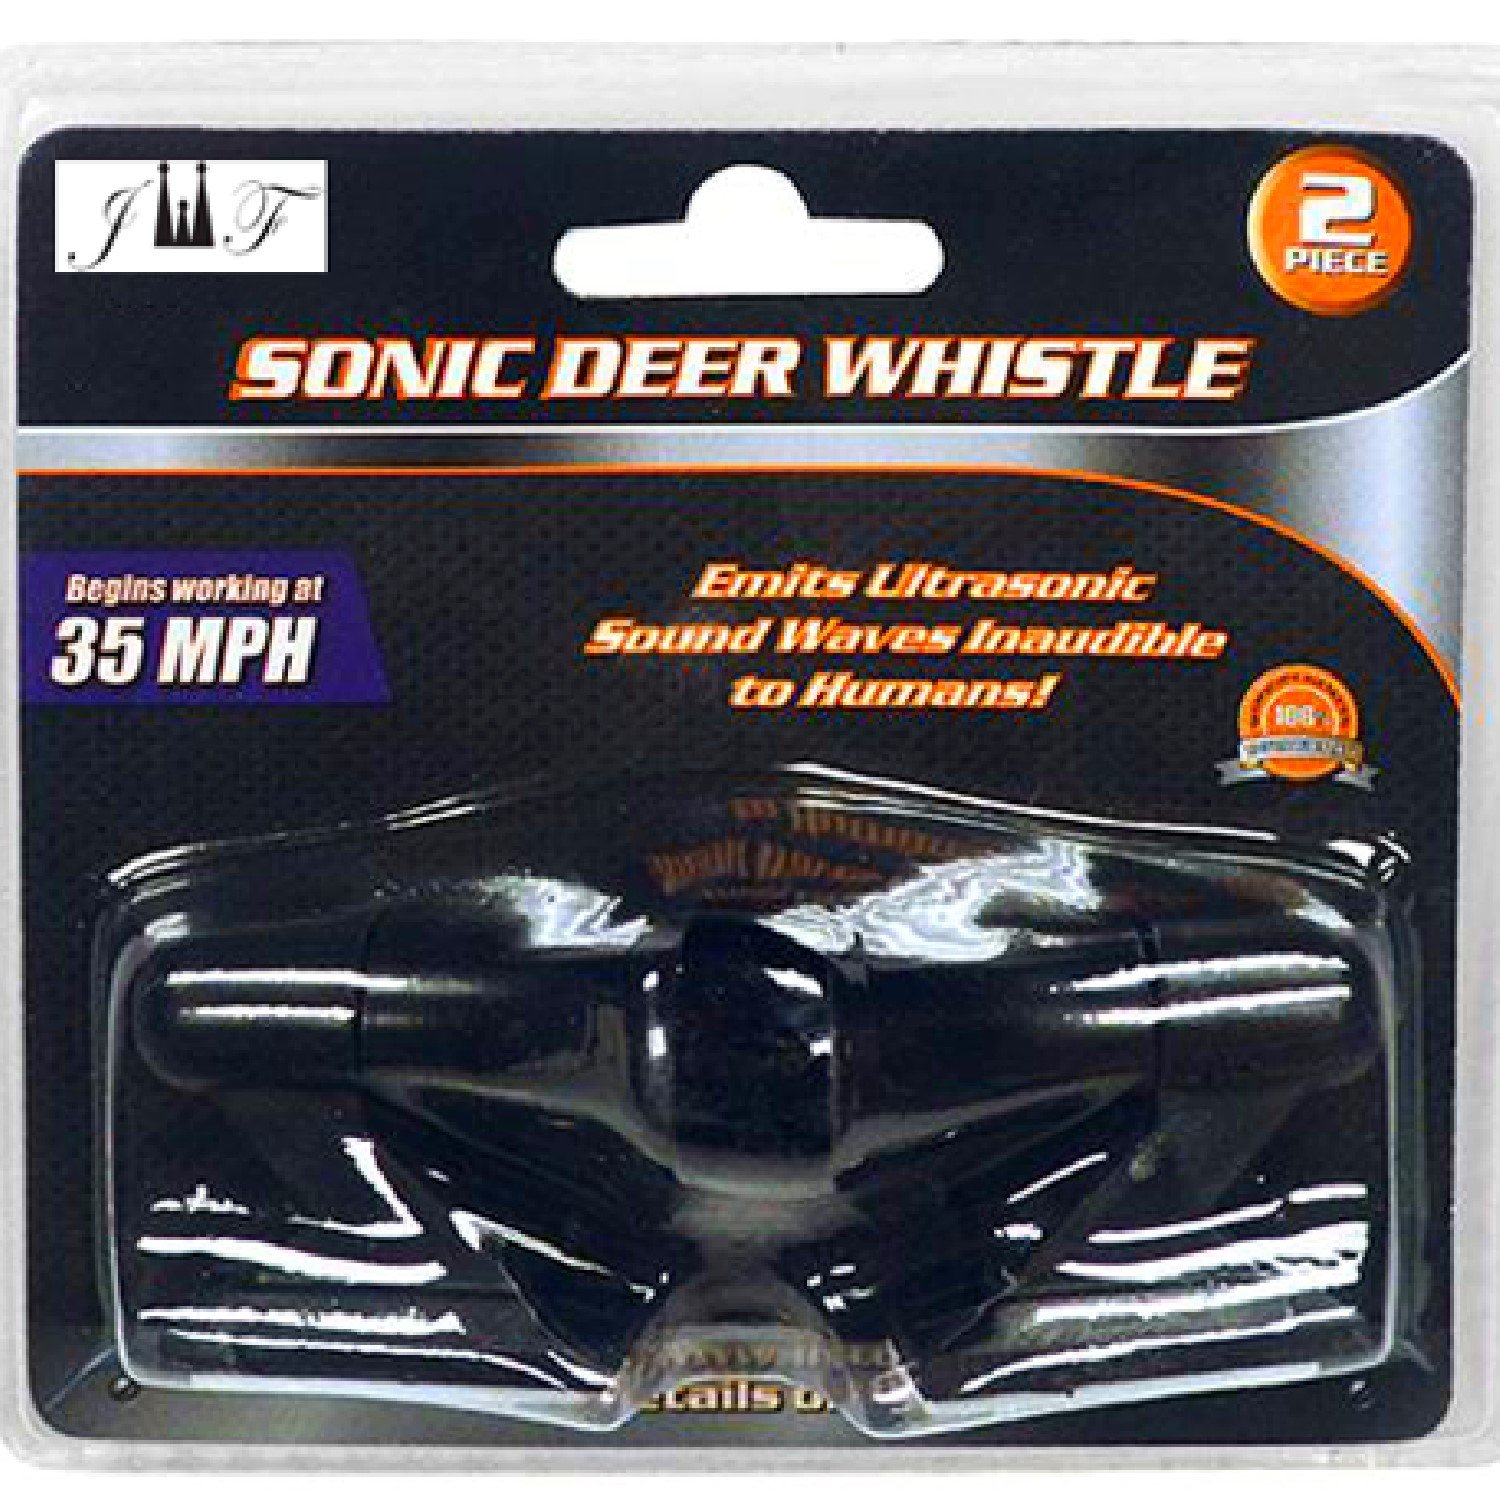 JEWELS FASHION Set of Two Ultrasonic Deer Whistle Alerts-Begins Working at 35 MPH-Powered by Wind Energy, Non-Electric TL-1087